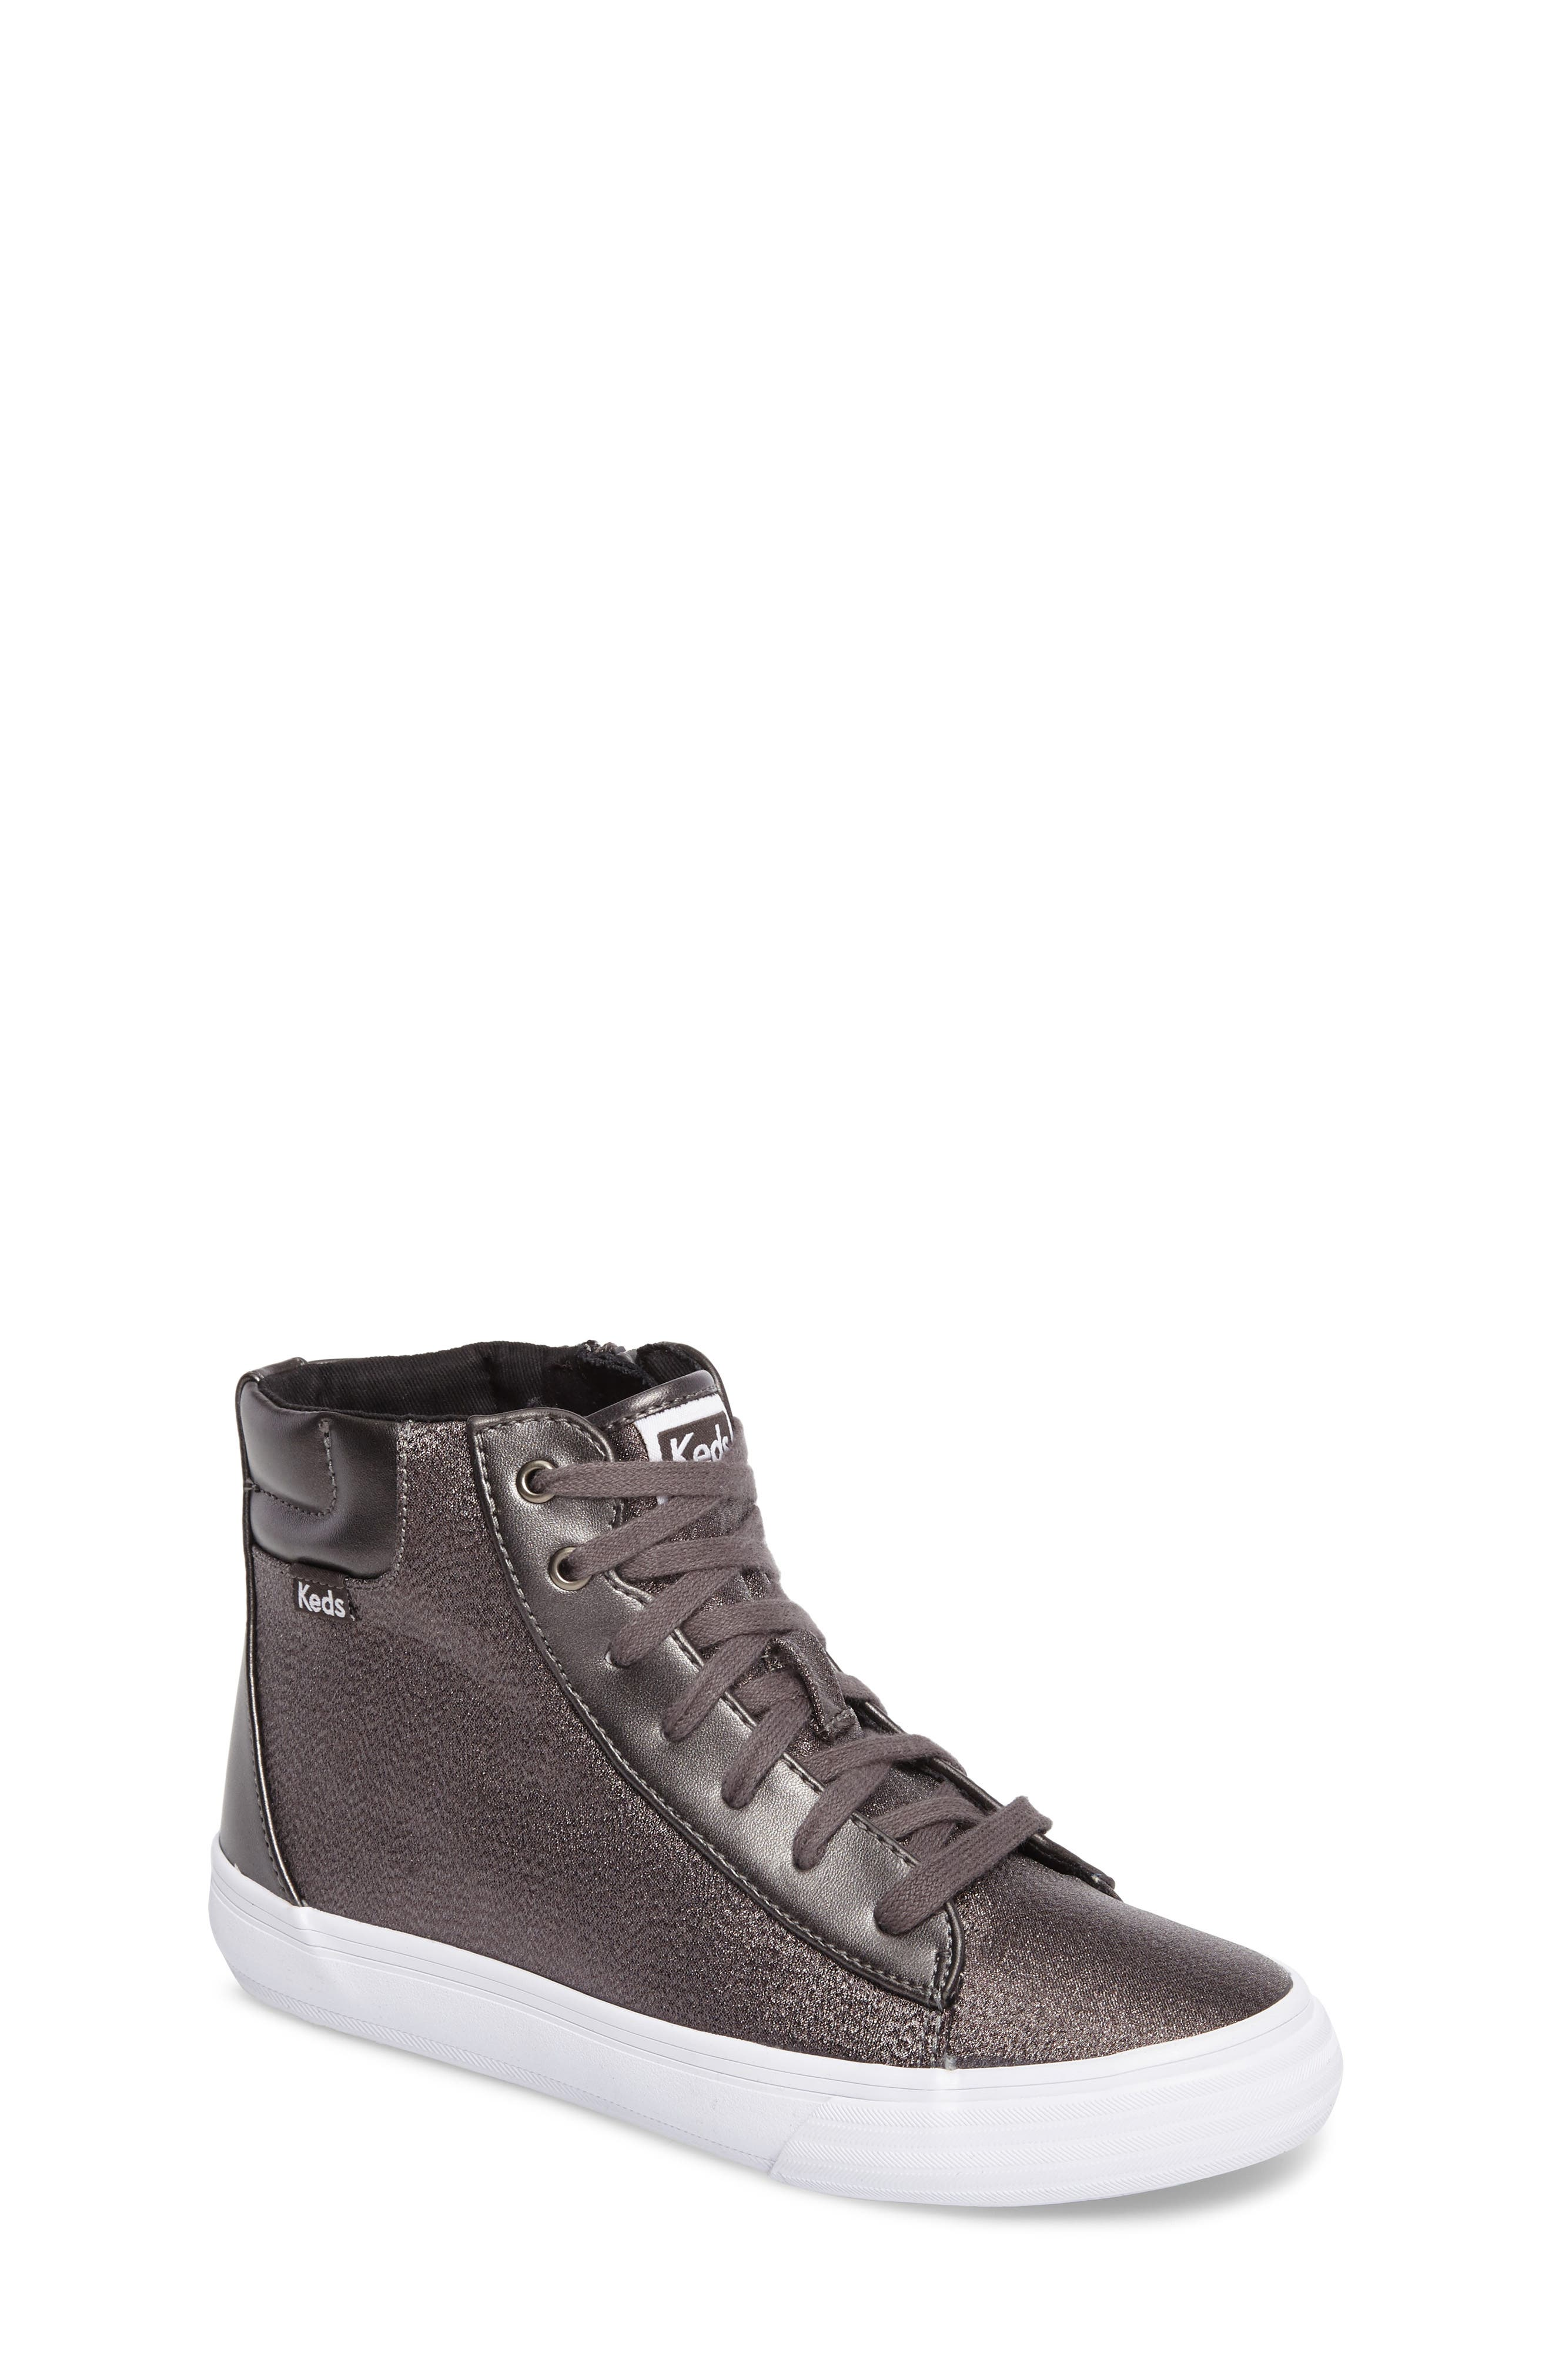 Double Up High Top Sneaker,                             Main thumbnail 1, color,                             Pewter